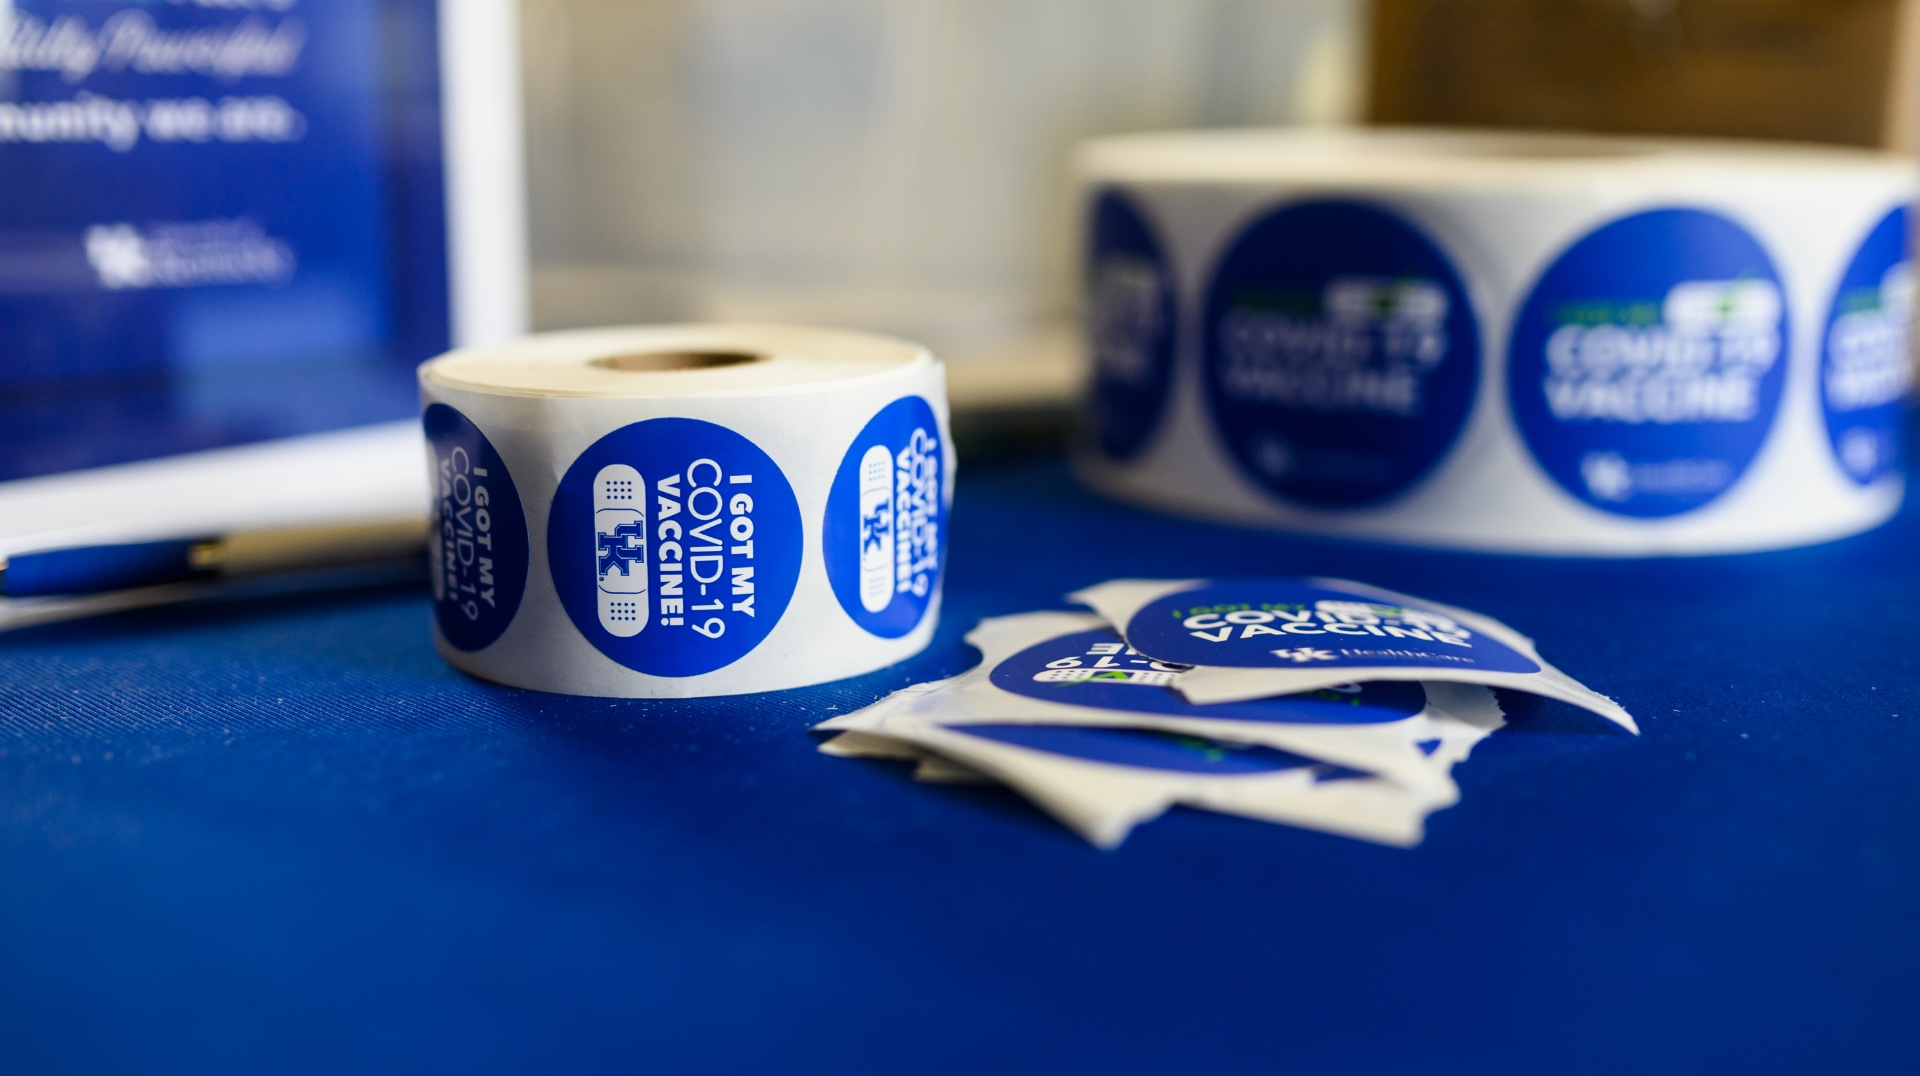 On a table are rolls of blue stickers with 'I got my COVID-19 vaccine!' printed on the front.